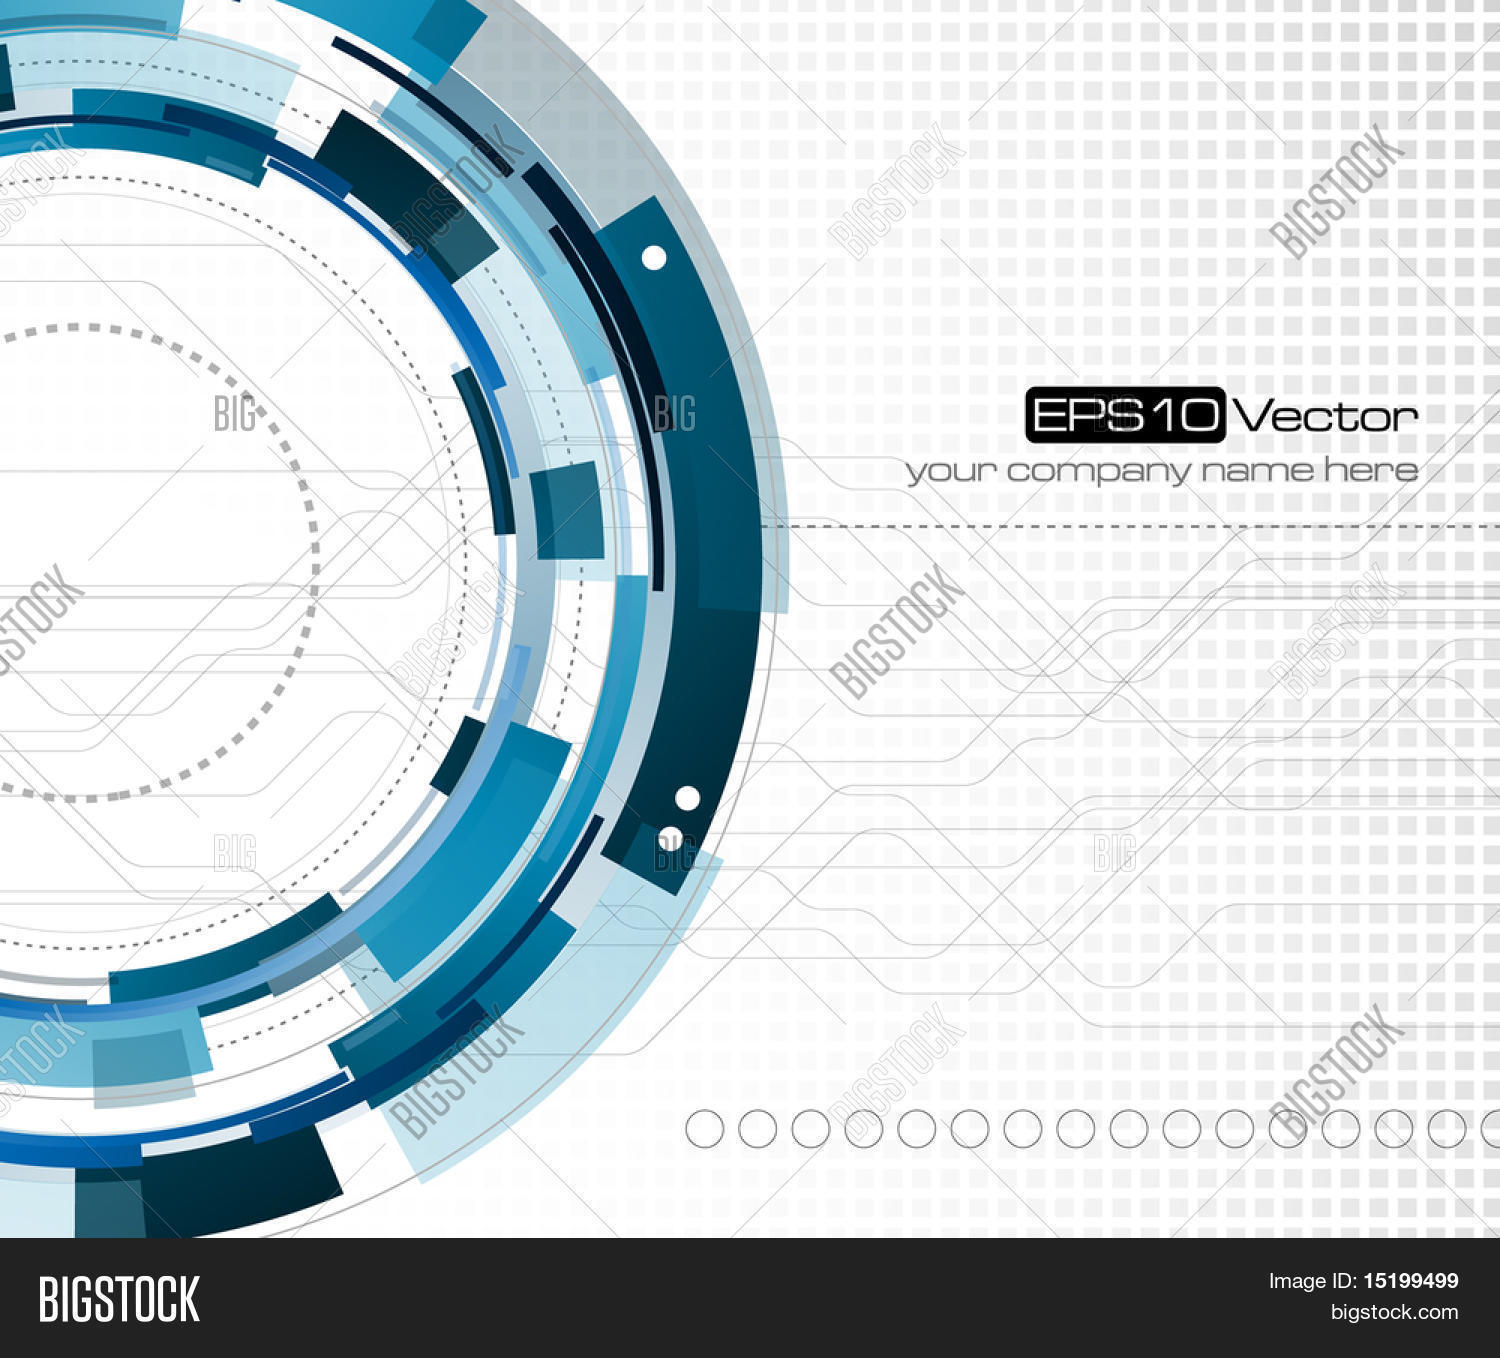 abstract,abstract background,abstract backgrounds,abstract background vector,abstract blue background,abstract technology background,automation,backdrop,background,background abstract,backgrounds abstract,backgrounds vector,background vector,blue,blue abstract,blue abstract background,blue background,blue background abstract,blue backgrounds,business,circle,company,computer,construction,construction background,curve,decorative,design,detail,drawing,element,engineering,engineering background,frame,future,gear,geometry,graphic,hi-tech,idea,illustration,industrial,industrial background,interaction,internet,line,machine,machinery,mechanical,mechanical engineering,model,modern,motion,on-line,pattern,report,robot,sketch,style,symbol,technical,technology,template,tool,vector,web,wheel,white,white abstract background